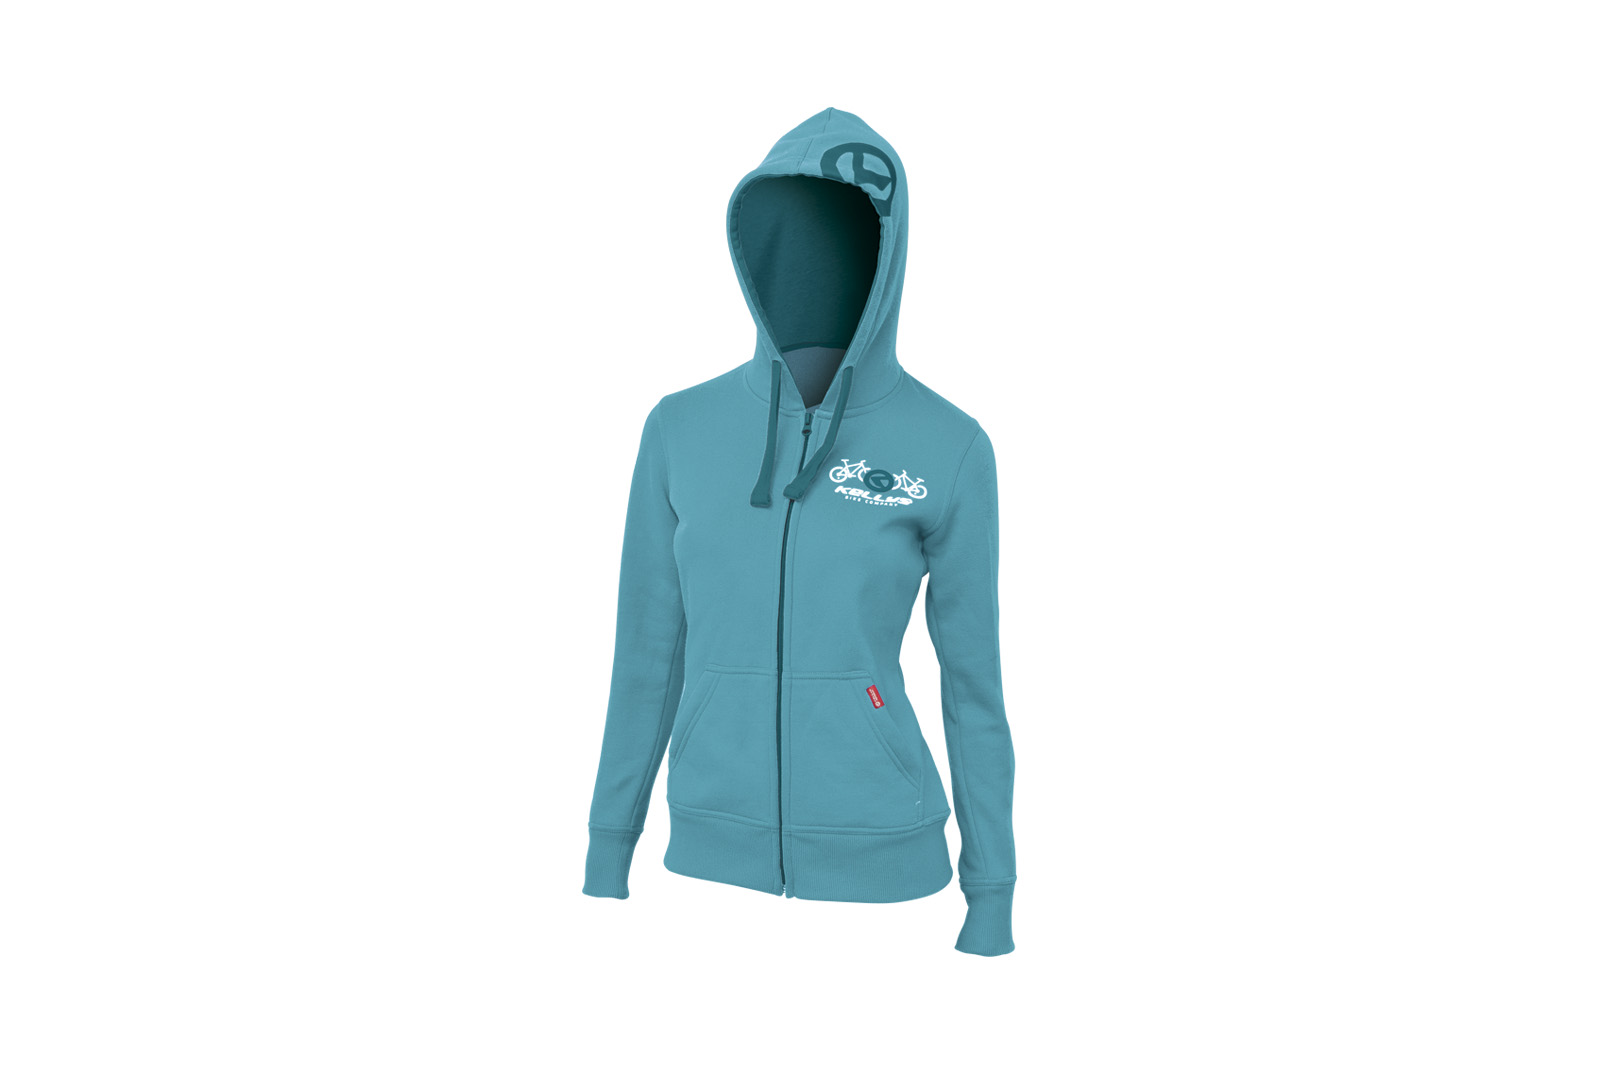 Sweatjacke KELLYS WOMEN´S BASIC Teal - XL - Sweatjacke KELLYS WOMEN´S BASIC Teal - XL